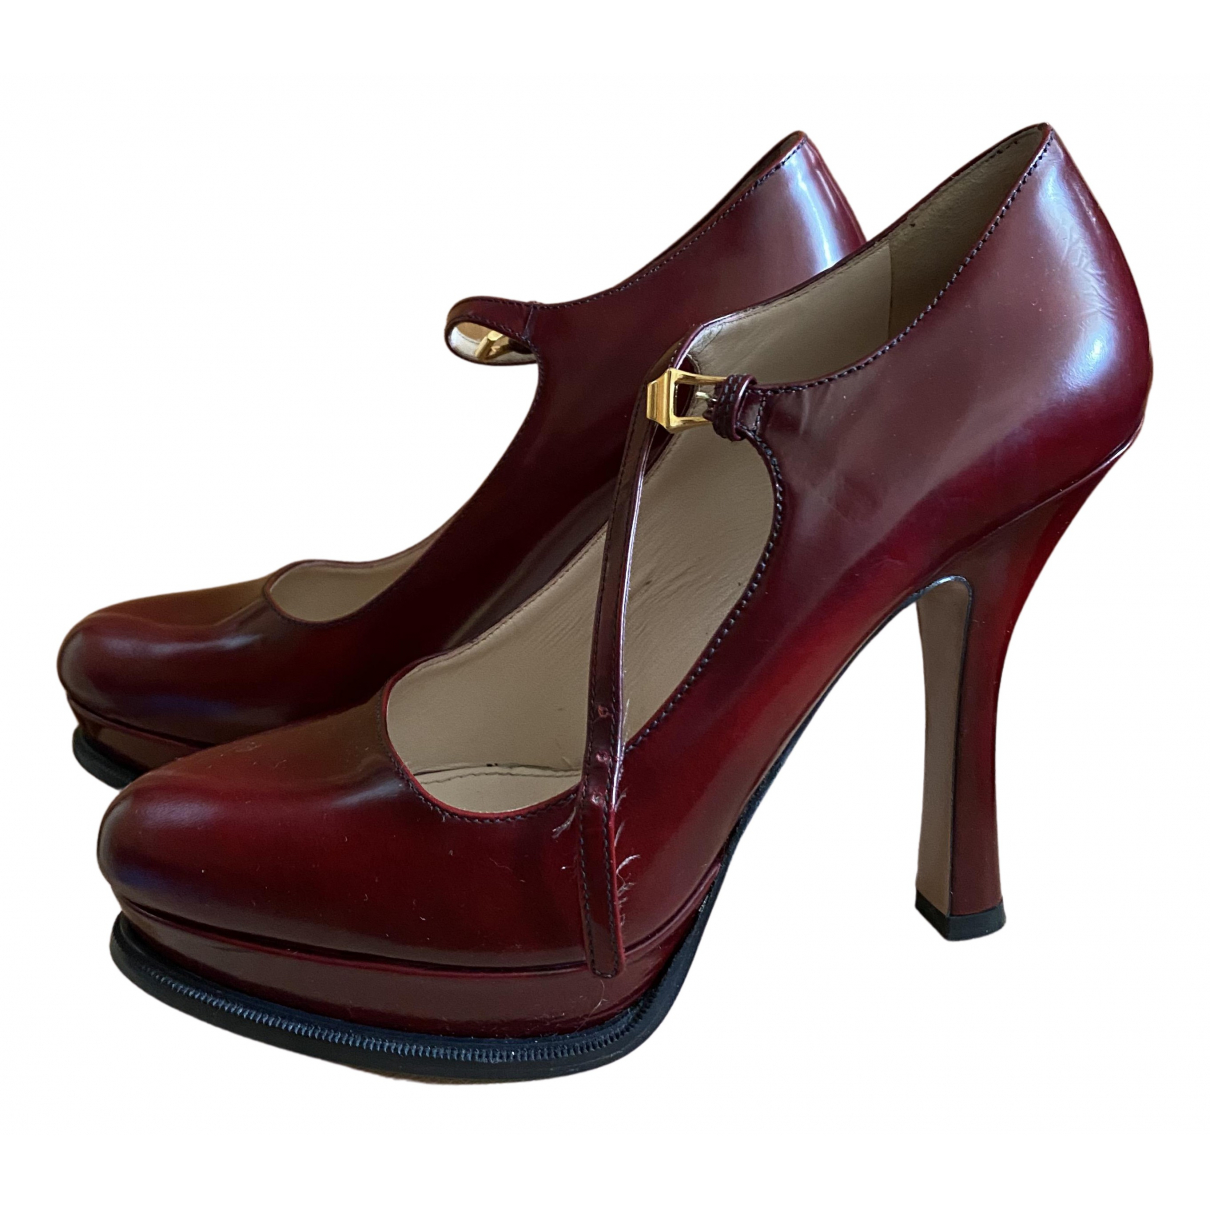 Prada \N Pumps in  Bordeauxrot Leder